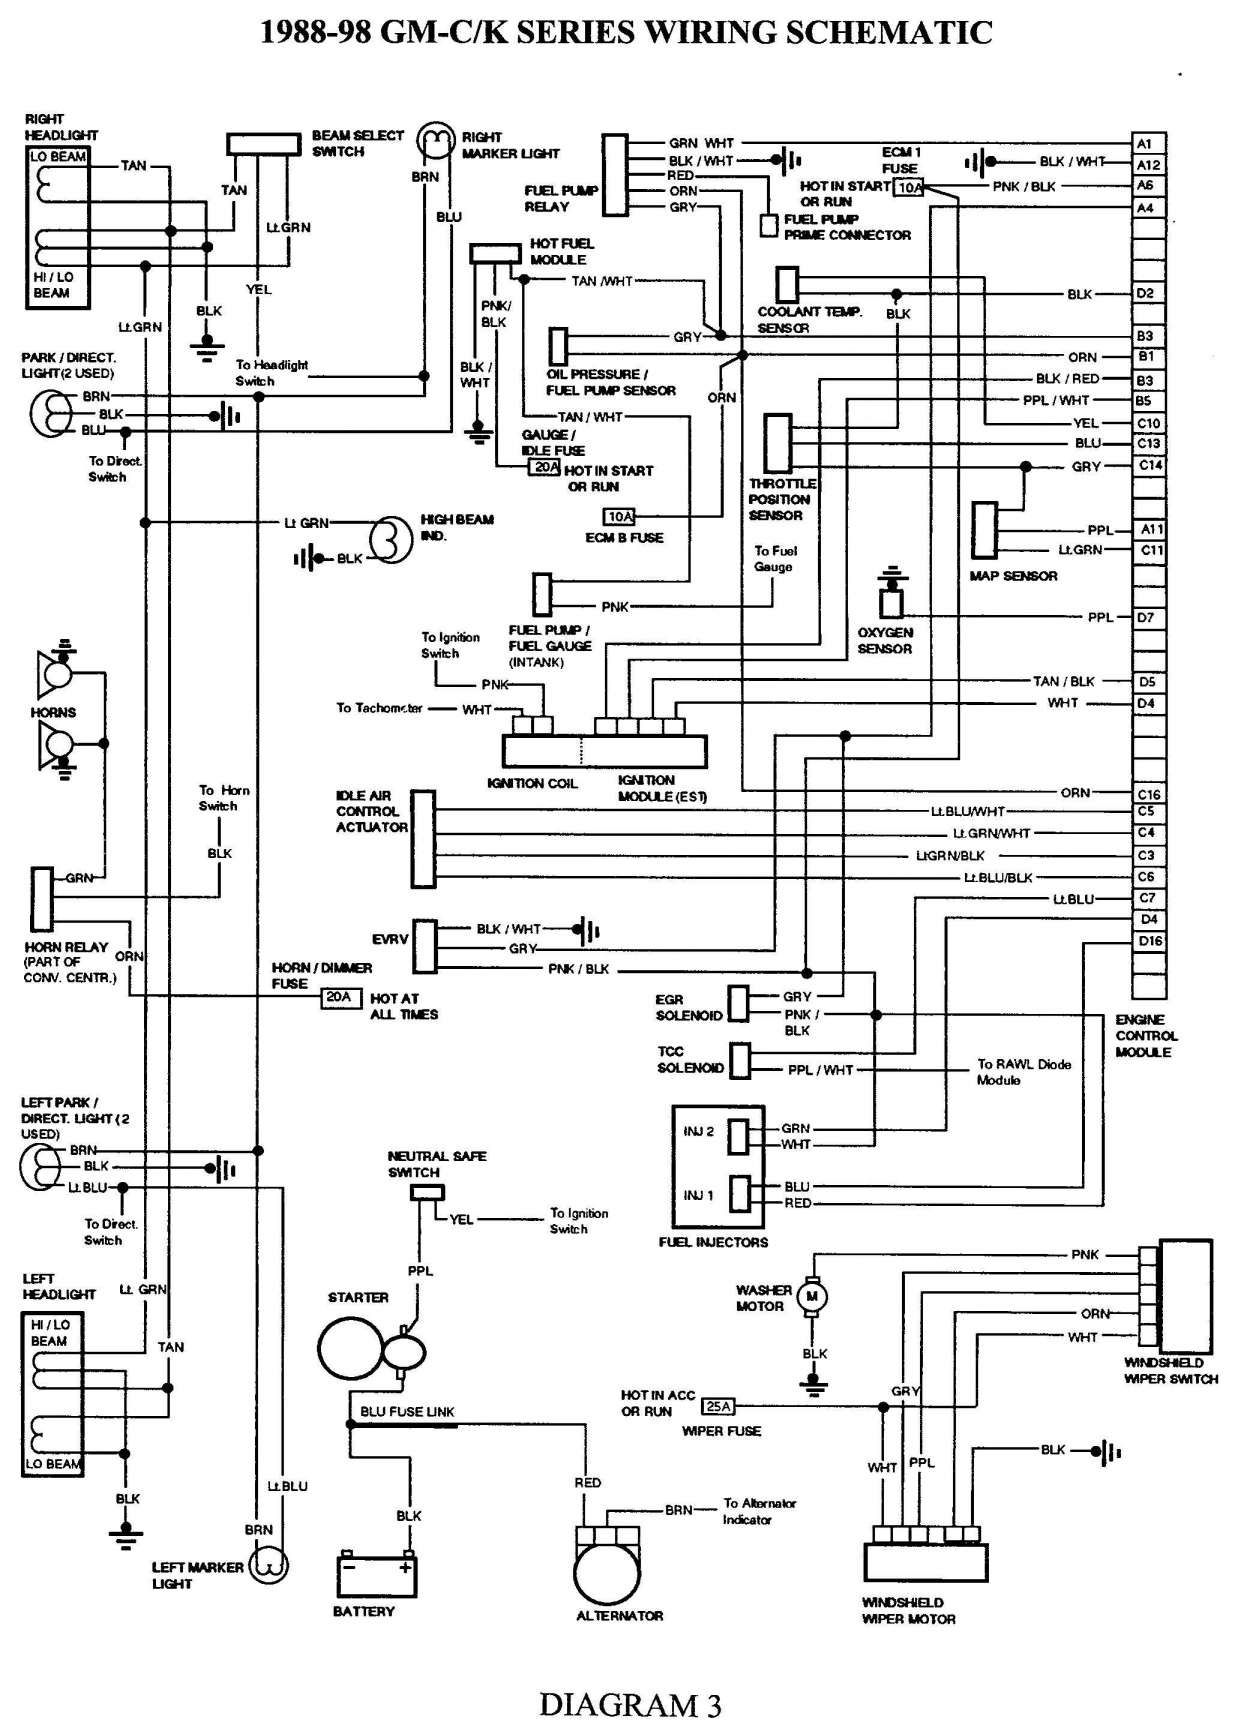 12+ 95 Chevy C K 1500 Truck Horn Wiring Diagram - Truck Diagram -  Wiringg.net in 2020 | Electrical diagram, 1986 chevy truck, Electrical wiring  diagramPinterest